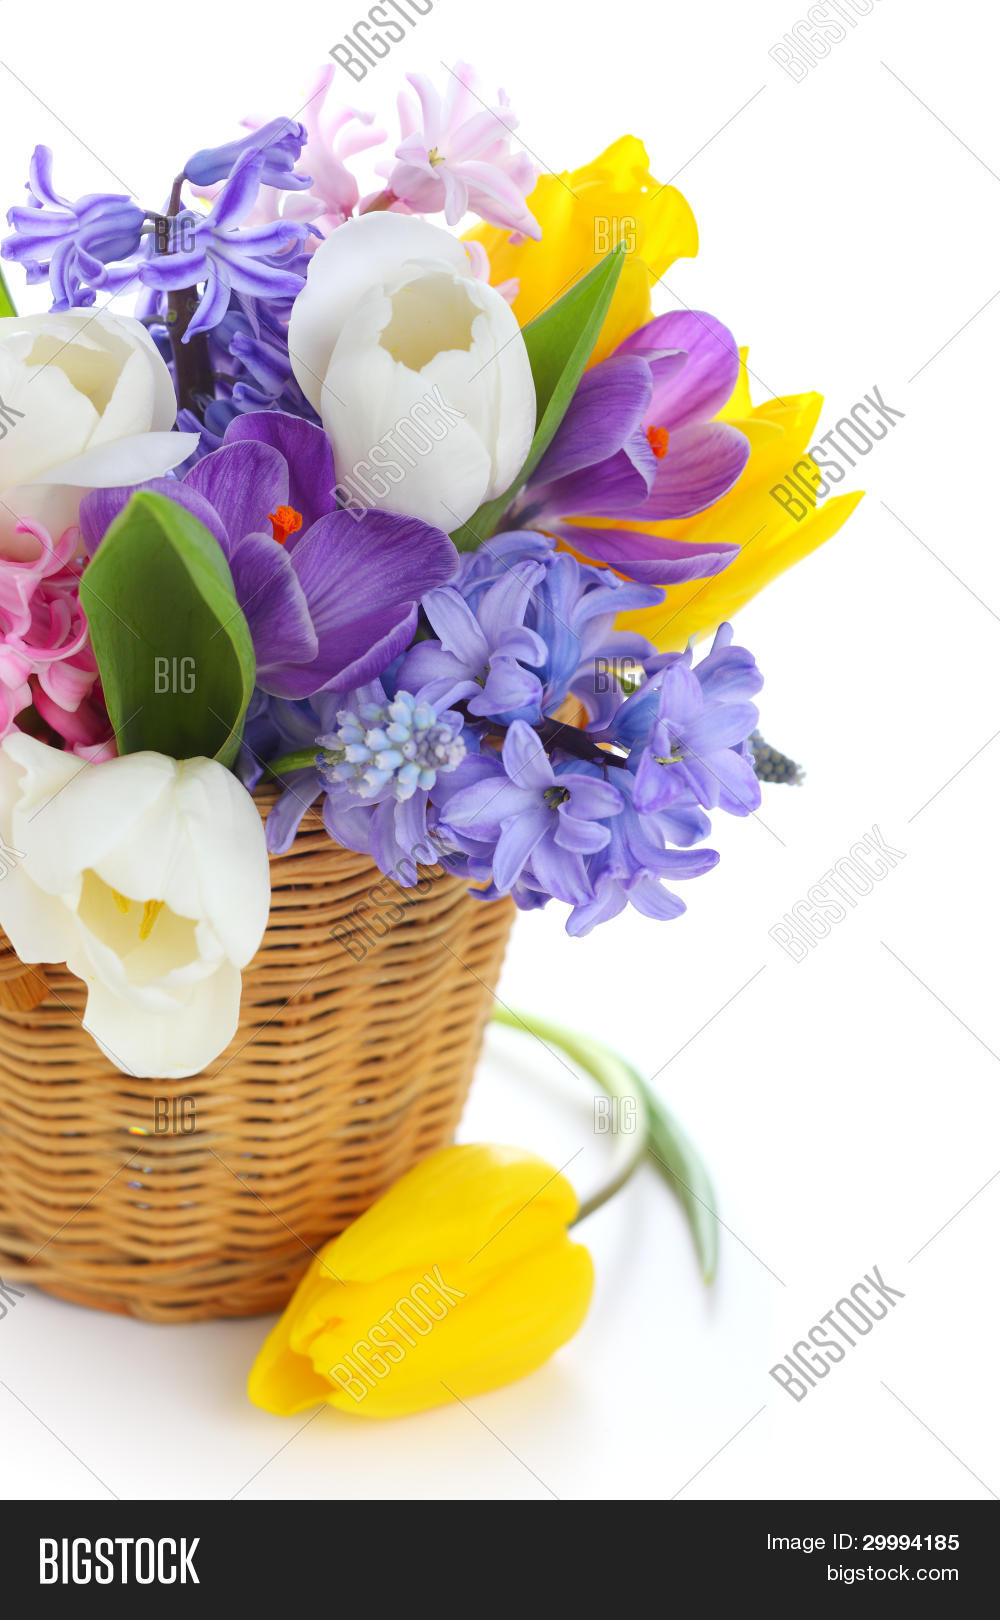 Bouquet Spring Flowers Image Photo Free Trial Bigstock